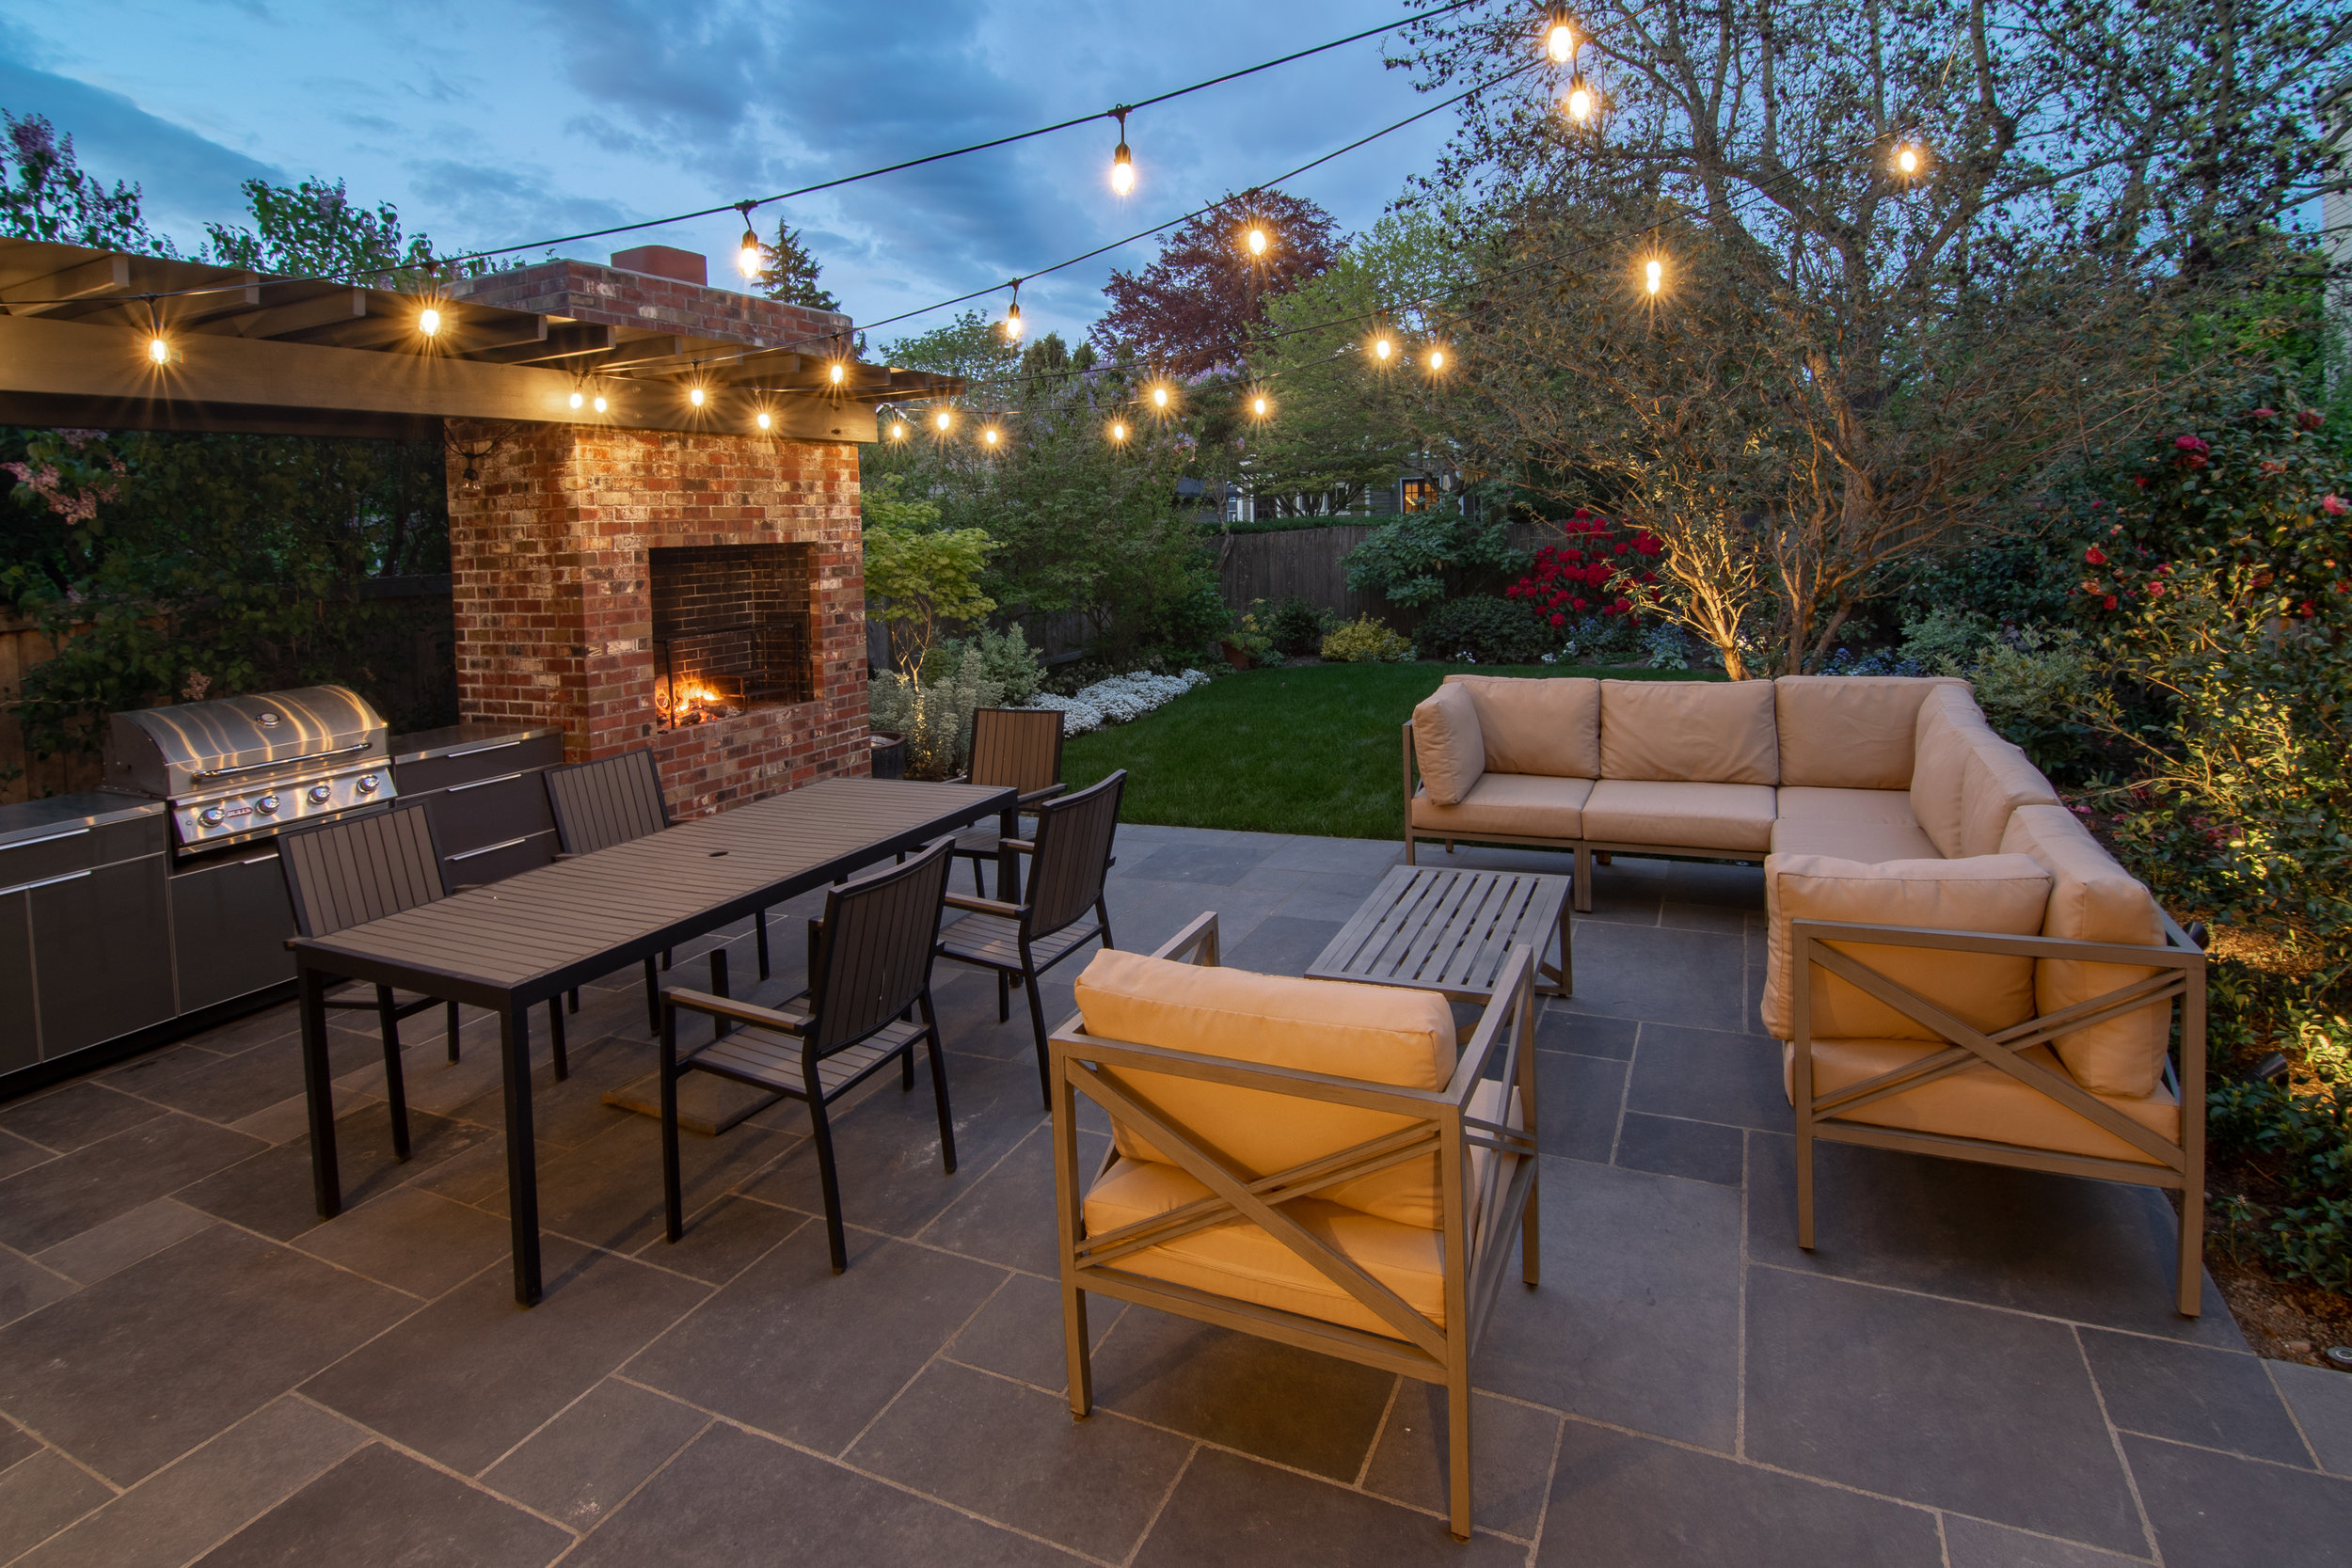 Patio and Modern Brick BBQ